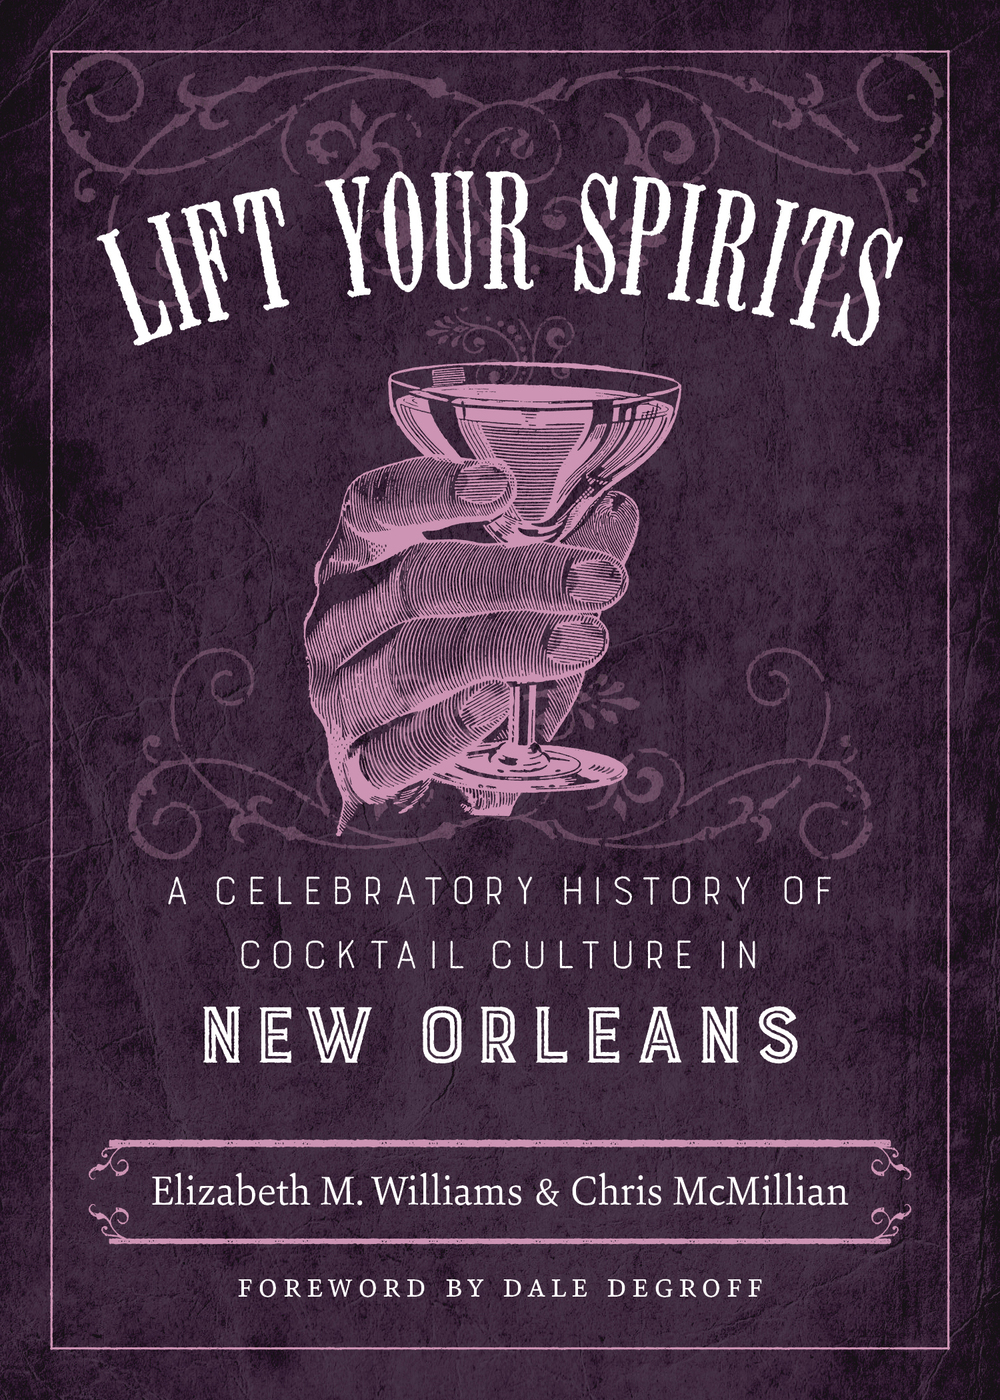 Lift Your Spirits: A Celebratory History of Cocktail Culture in New Orleans by Elizabeth Williams